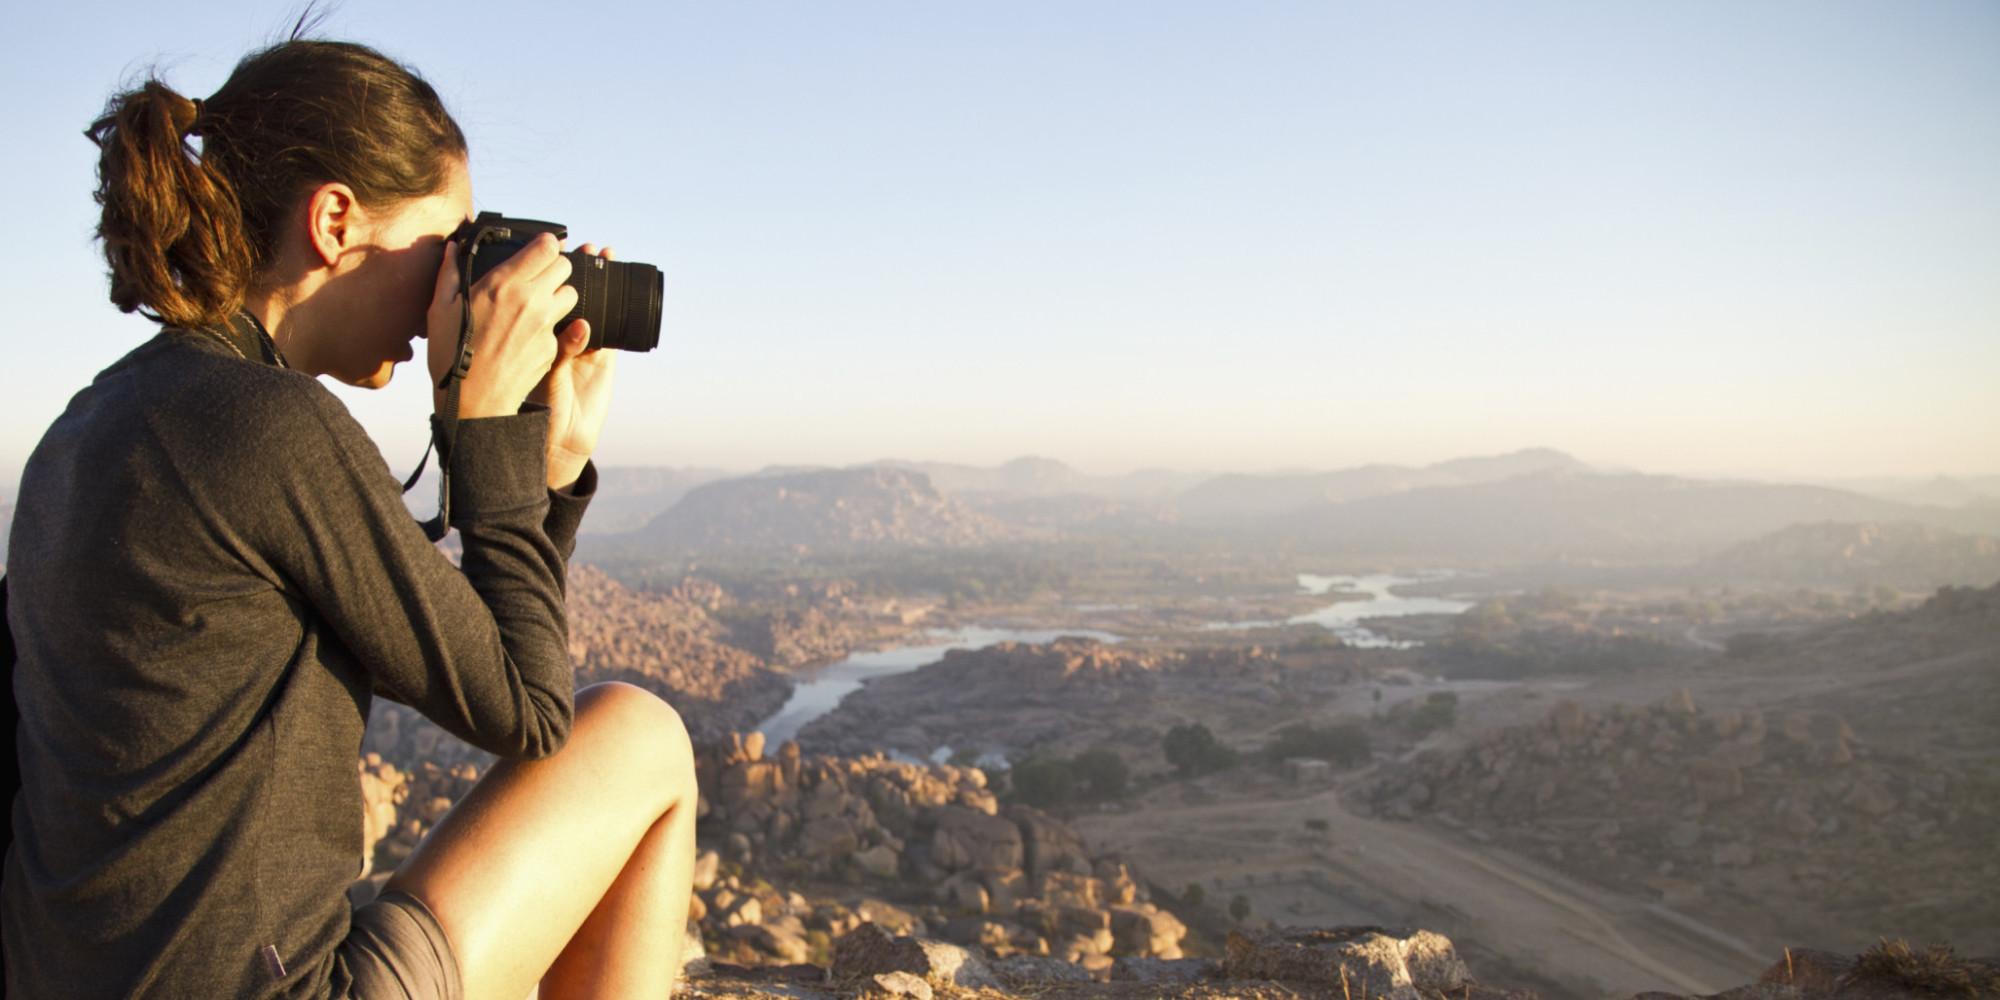 5 Tips to Enhance Your Skills and Confidence for Photography